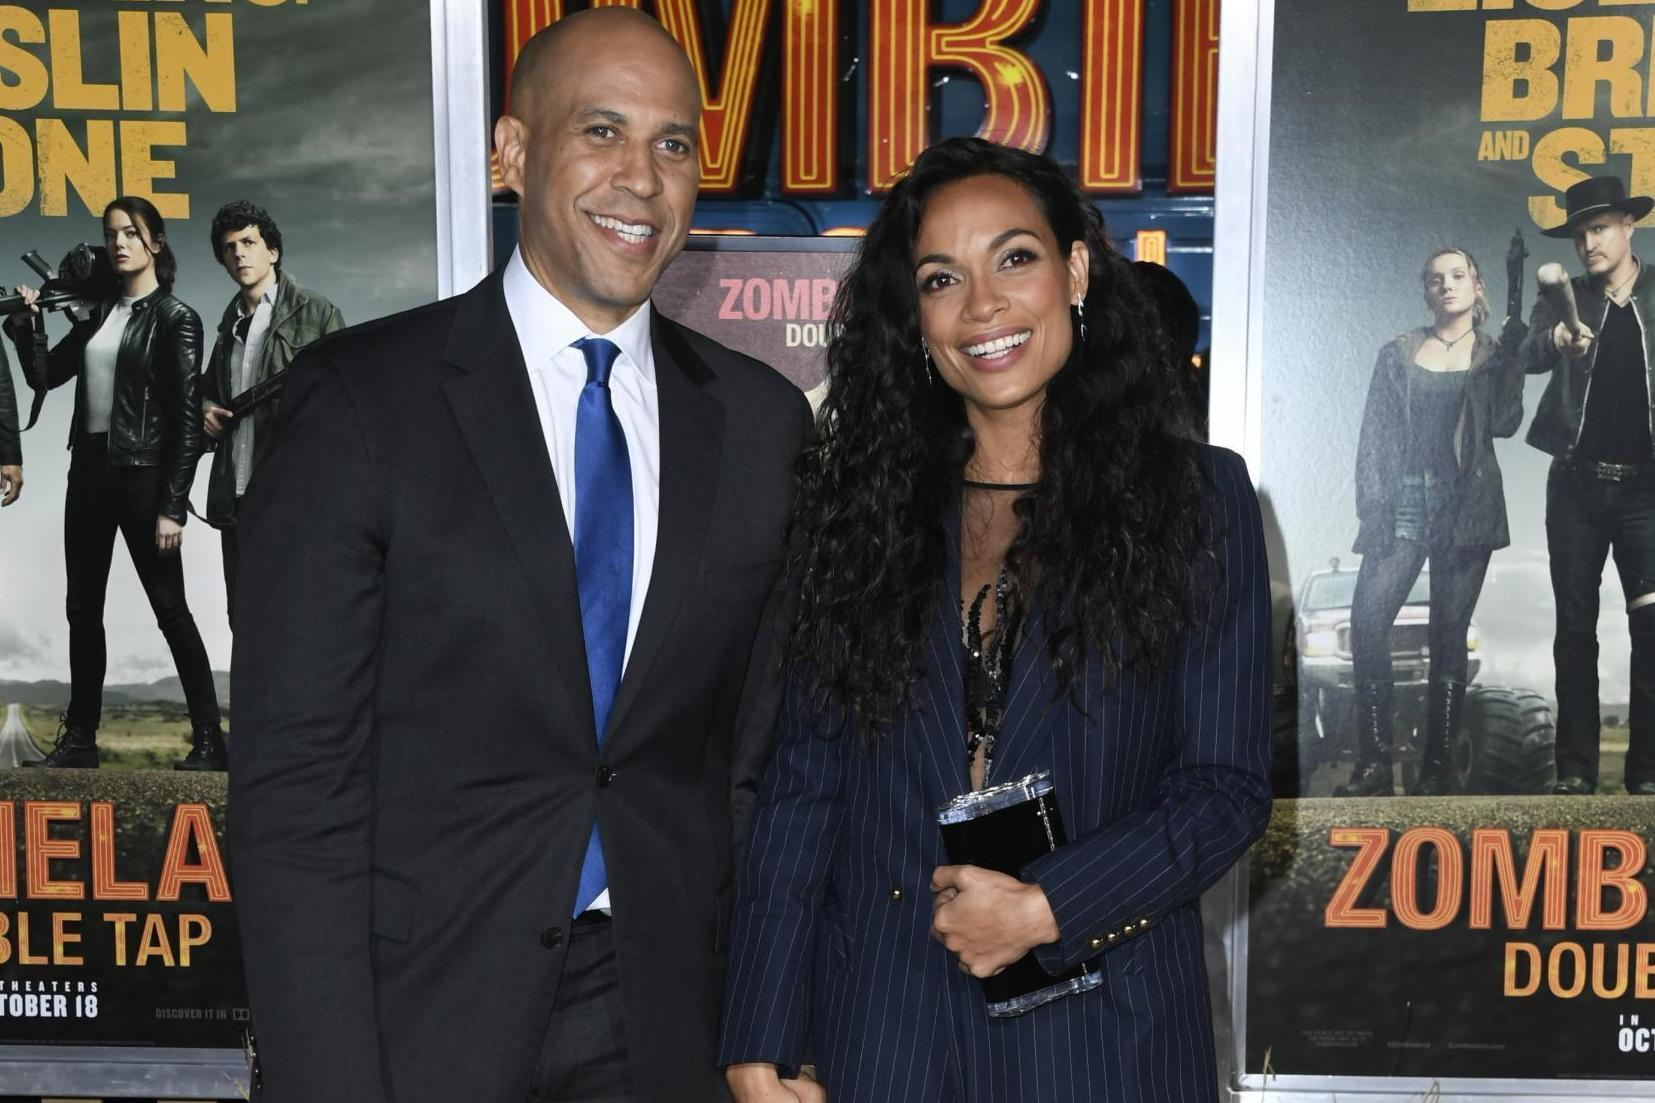 Rosario Dawson comes out while discussing sexuality and relationship with Cory Booker - independent